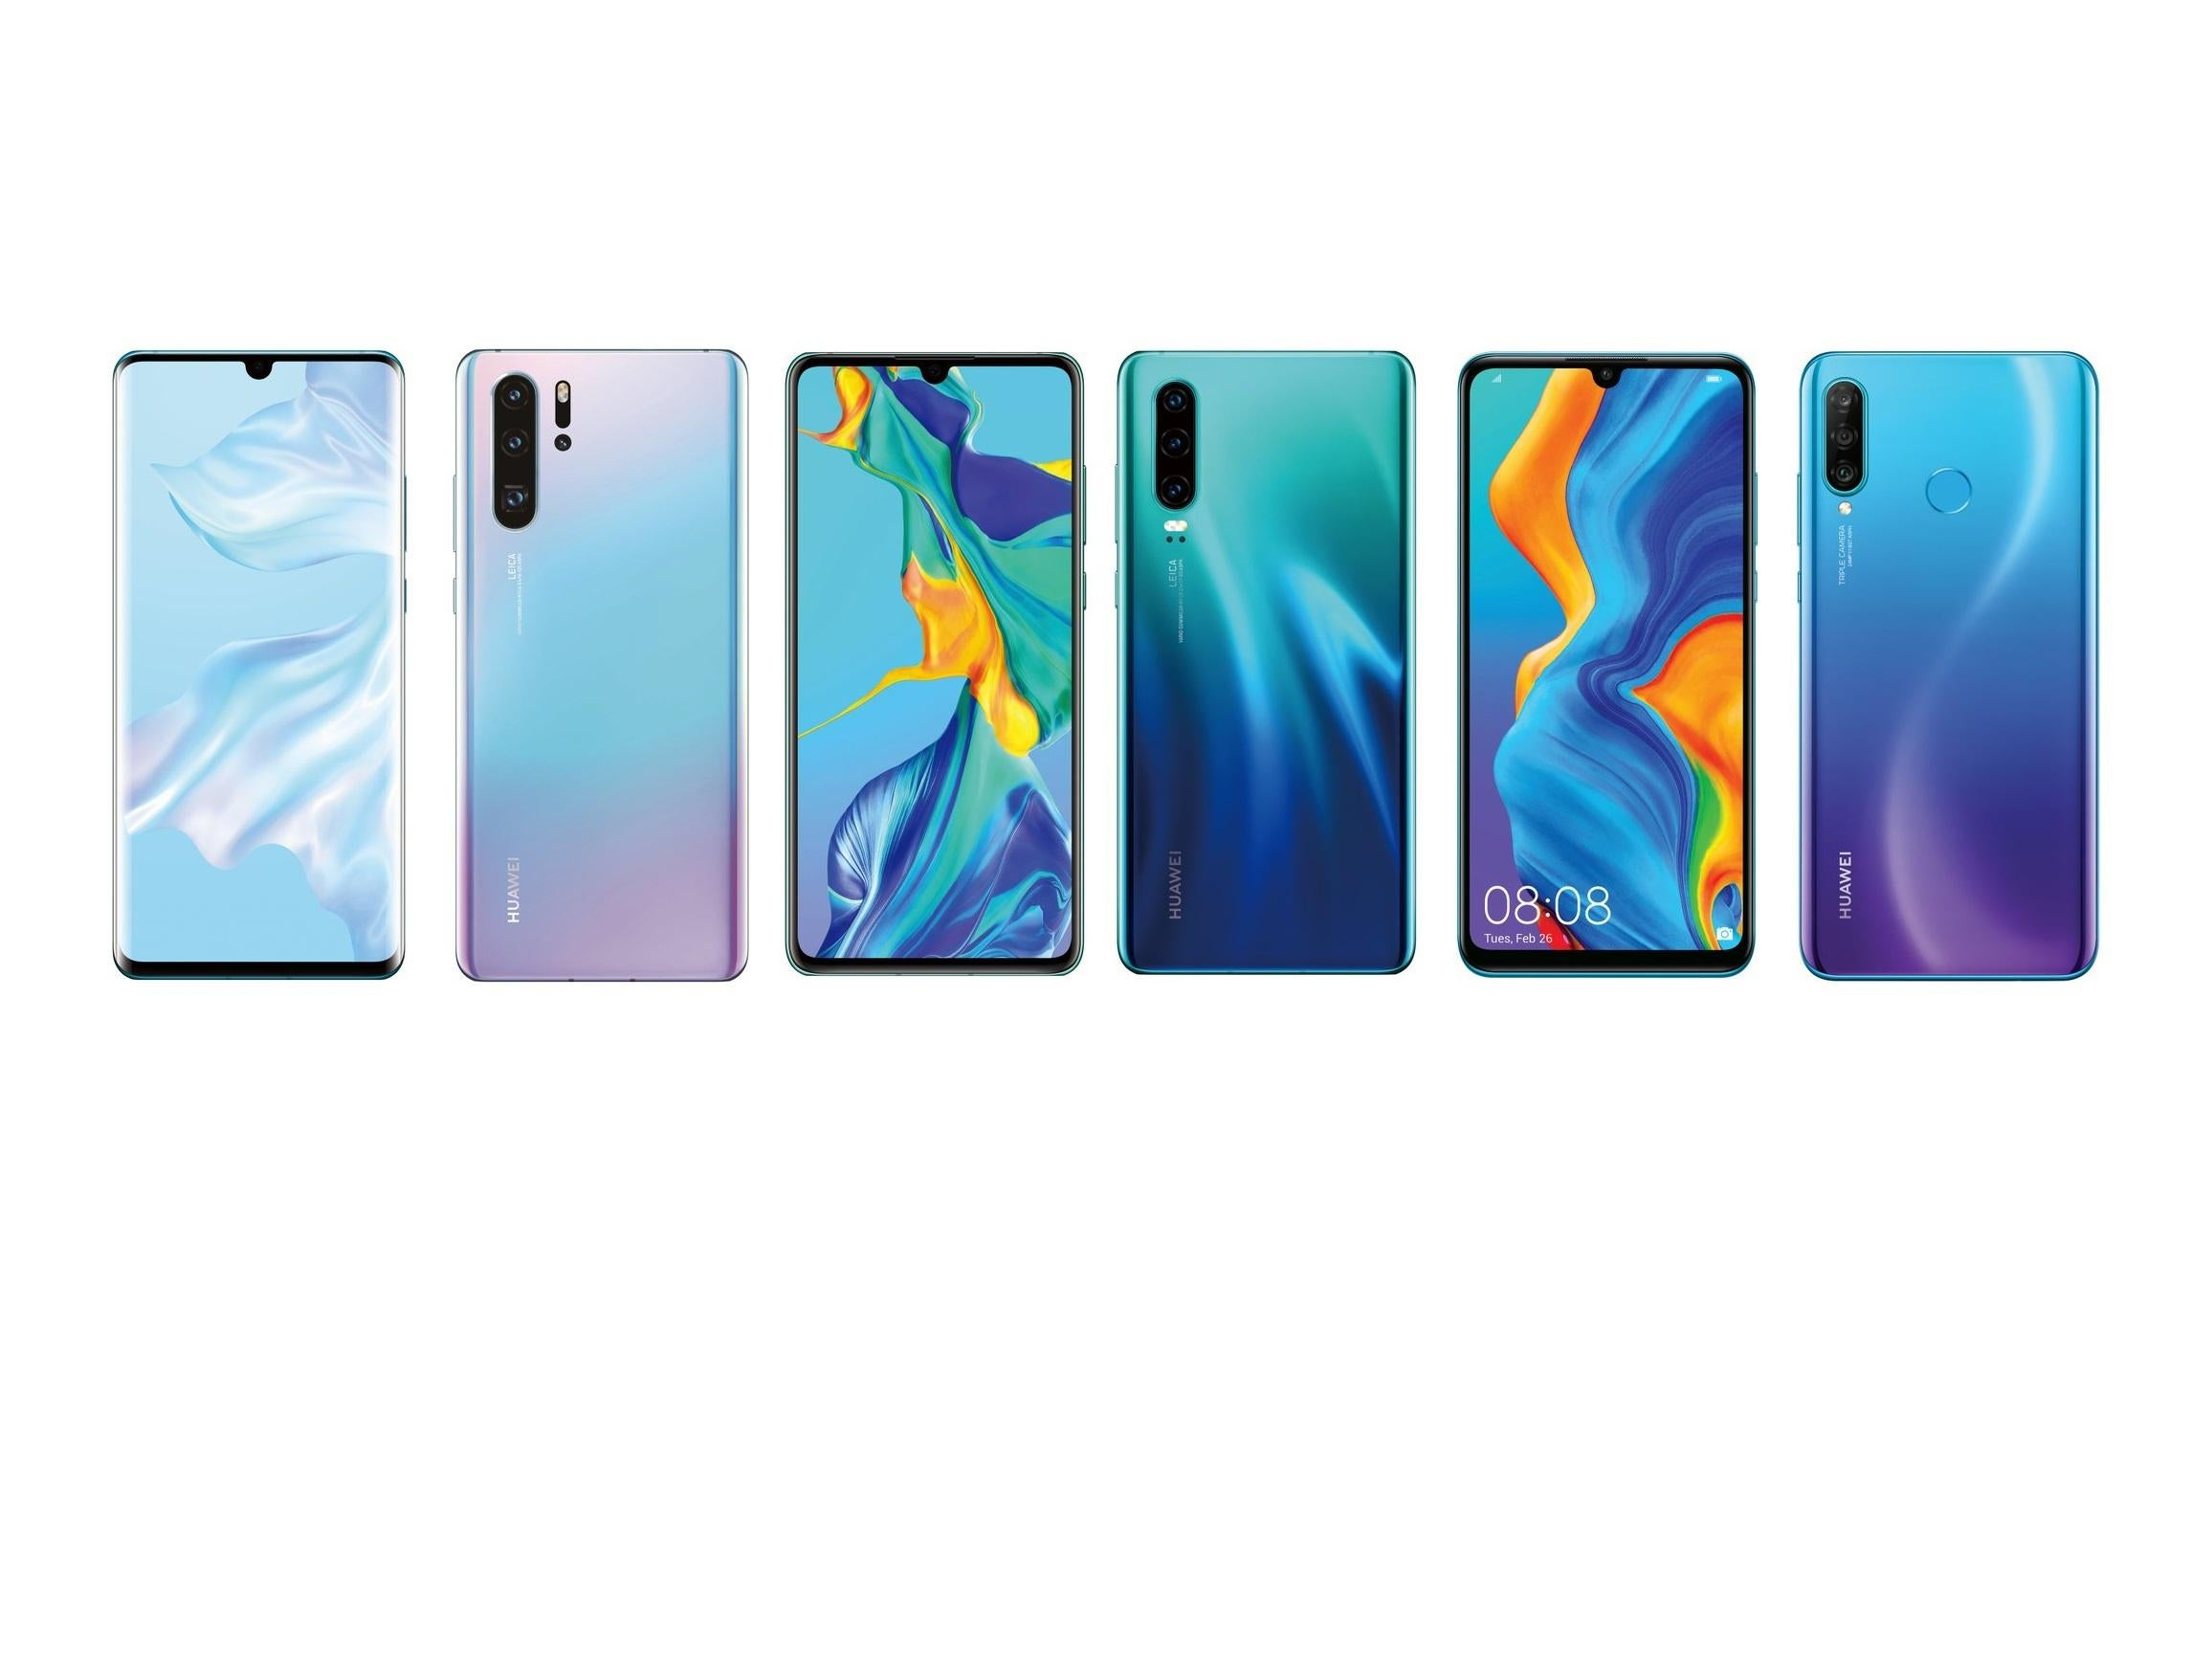 Huawei P30 Pro leaked images reveal nearly everything about new